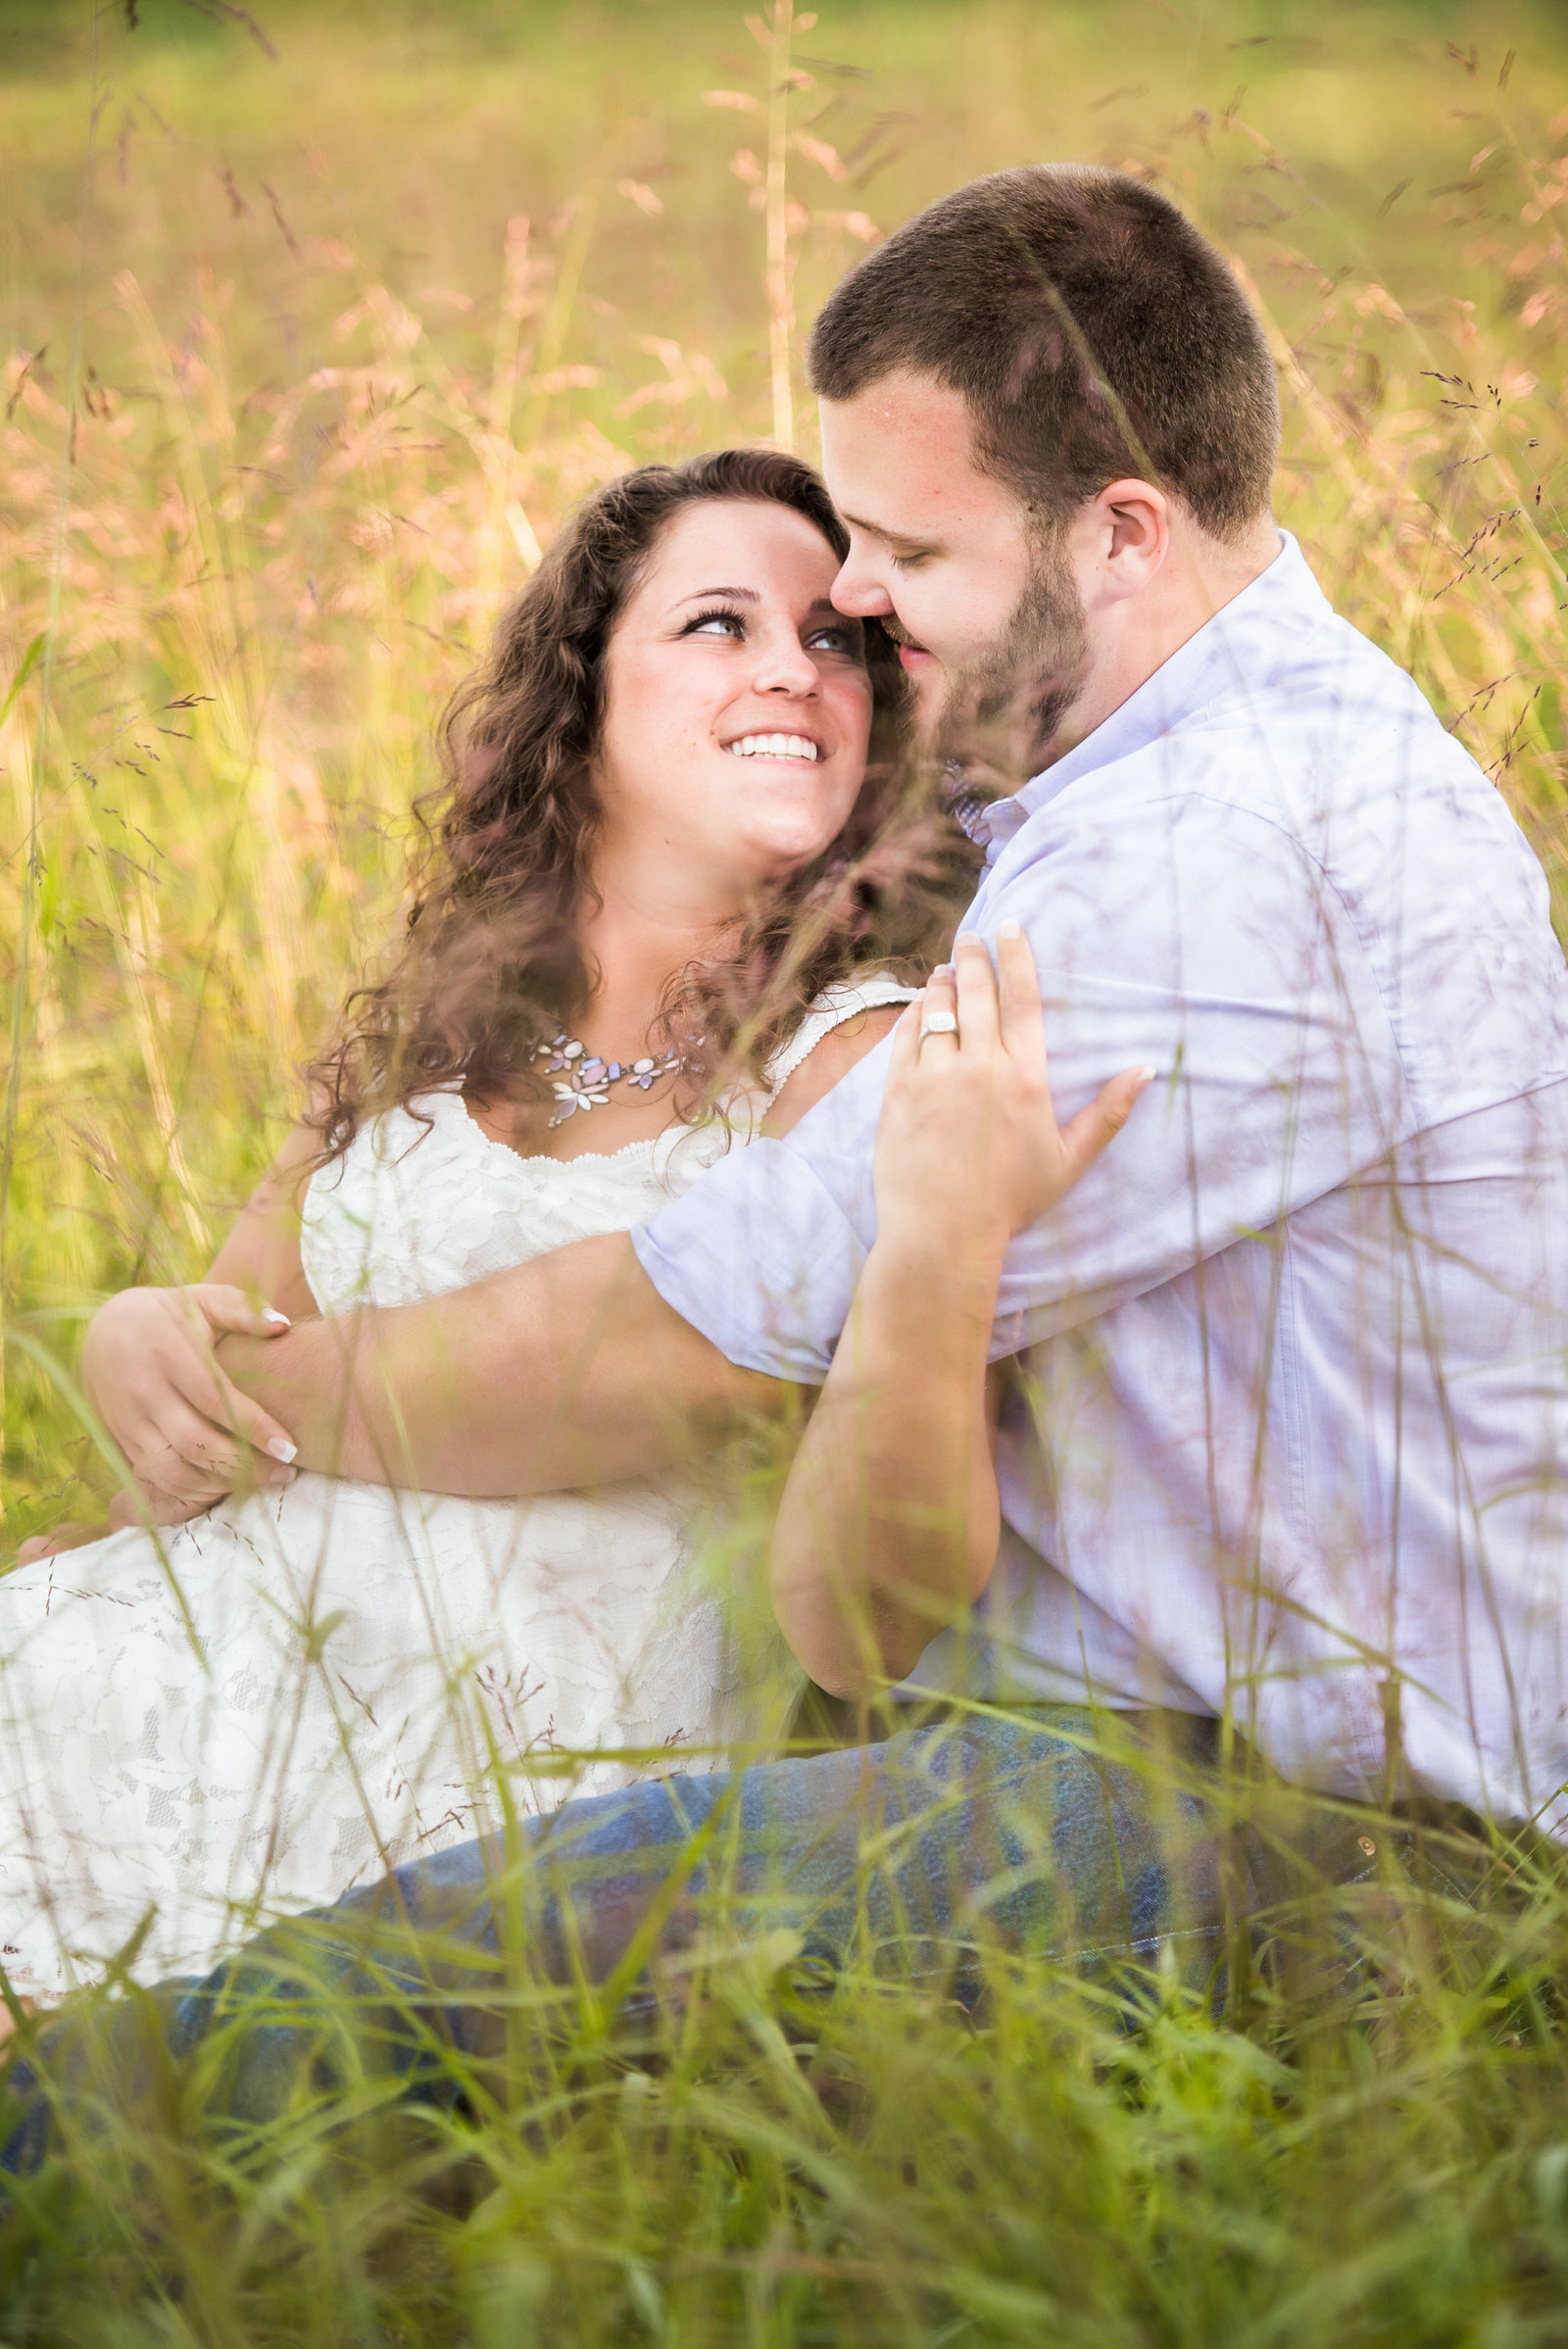 NJ_Rustic_Engagement_Photography023